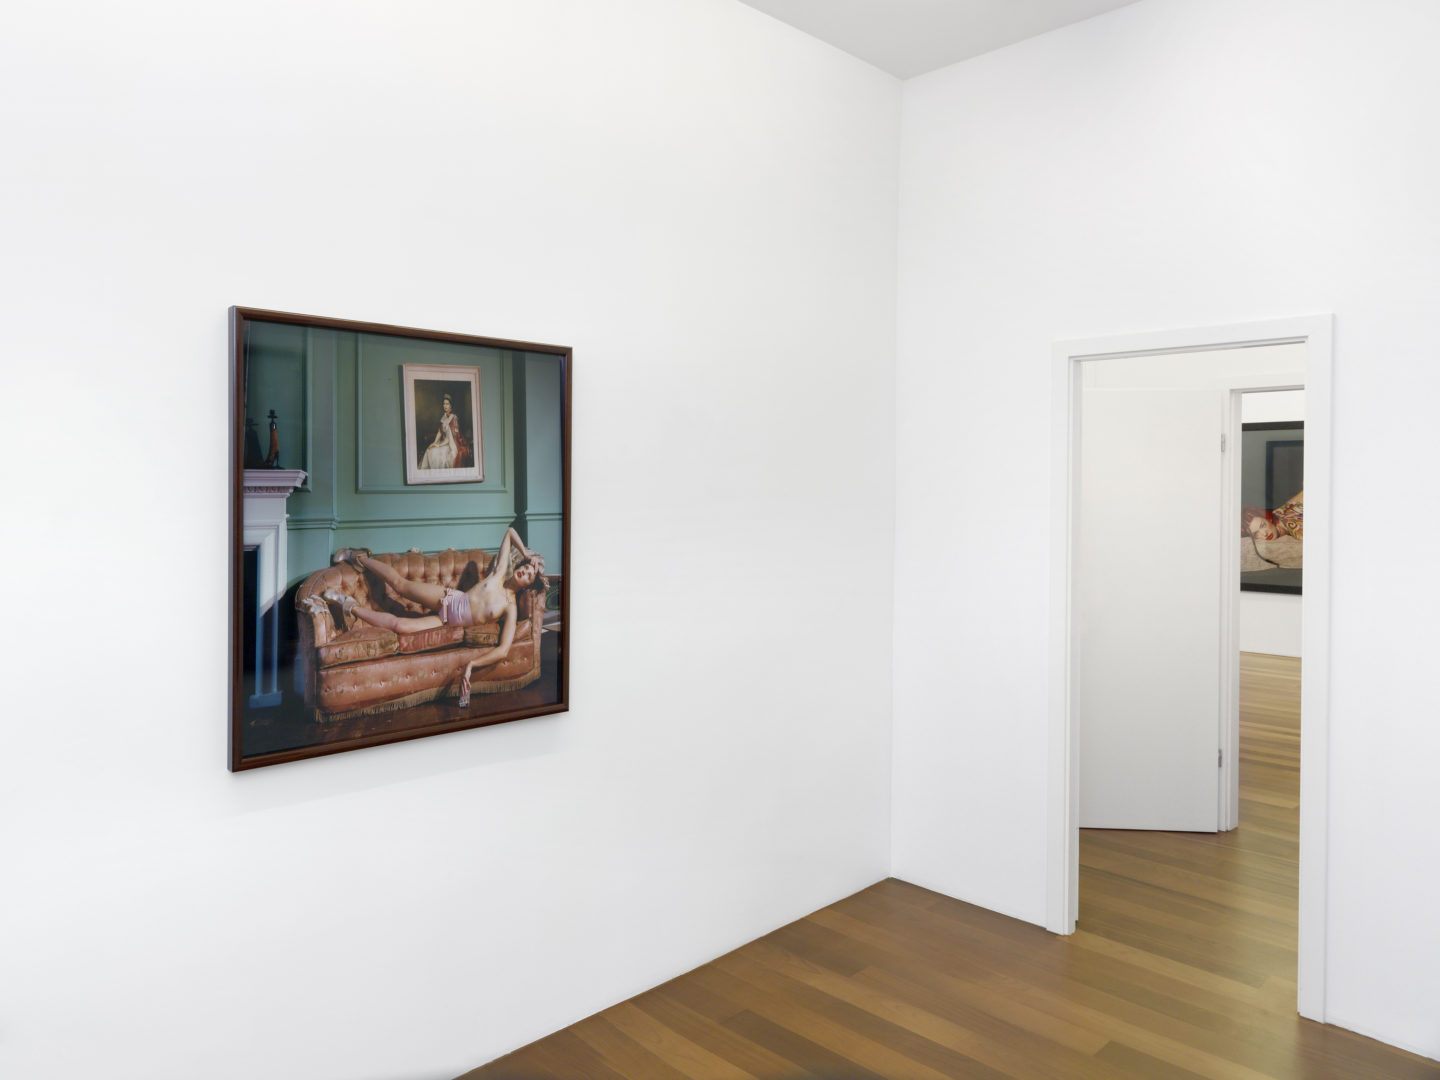 Exhibition View Bettina Rheims Soloshow at Xippas, Geneve / Photn: Annik Wetter / Courtesy: the artist and Xippas, Geneva